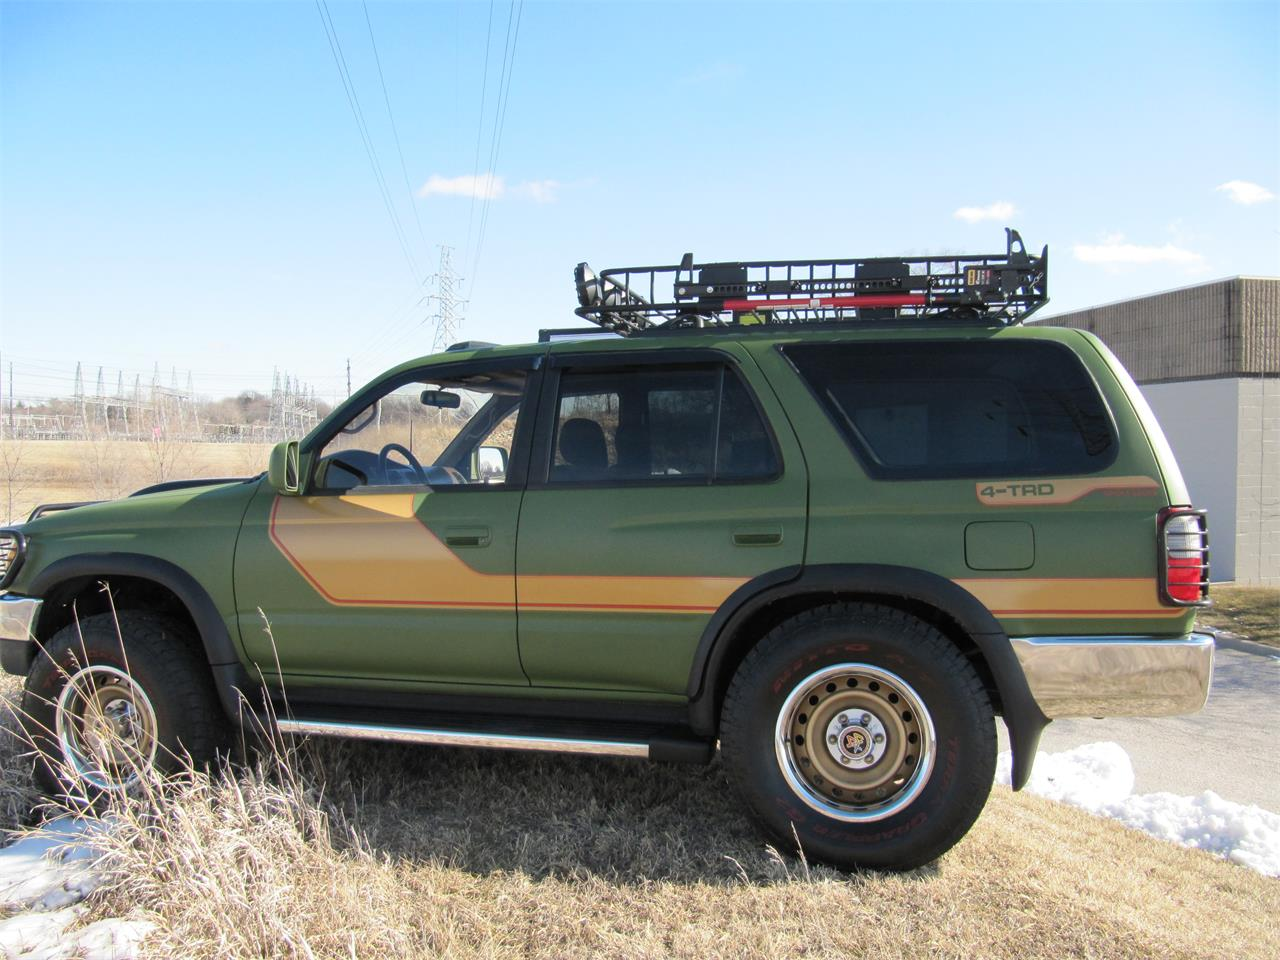 1997 toyota 4runner for sale classiccars com cc 1321801 1997 toyota 4runner for sale